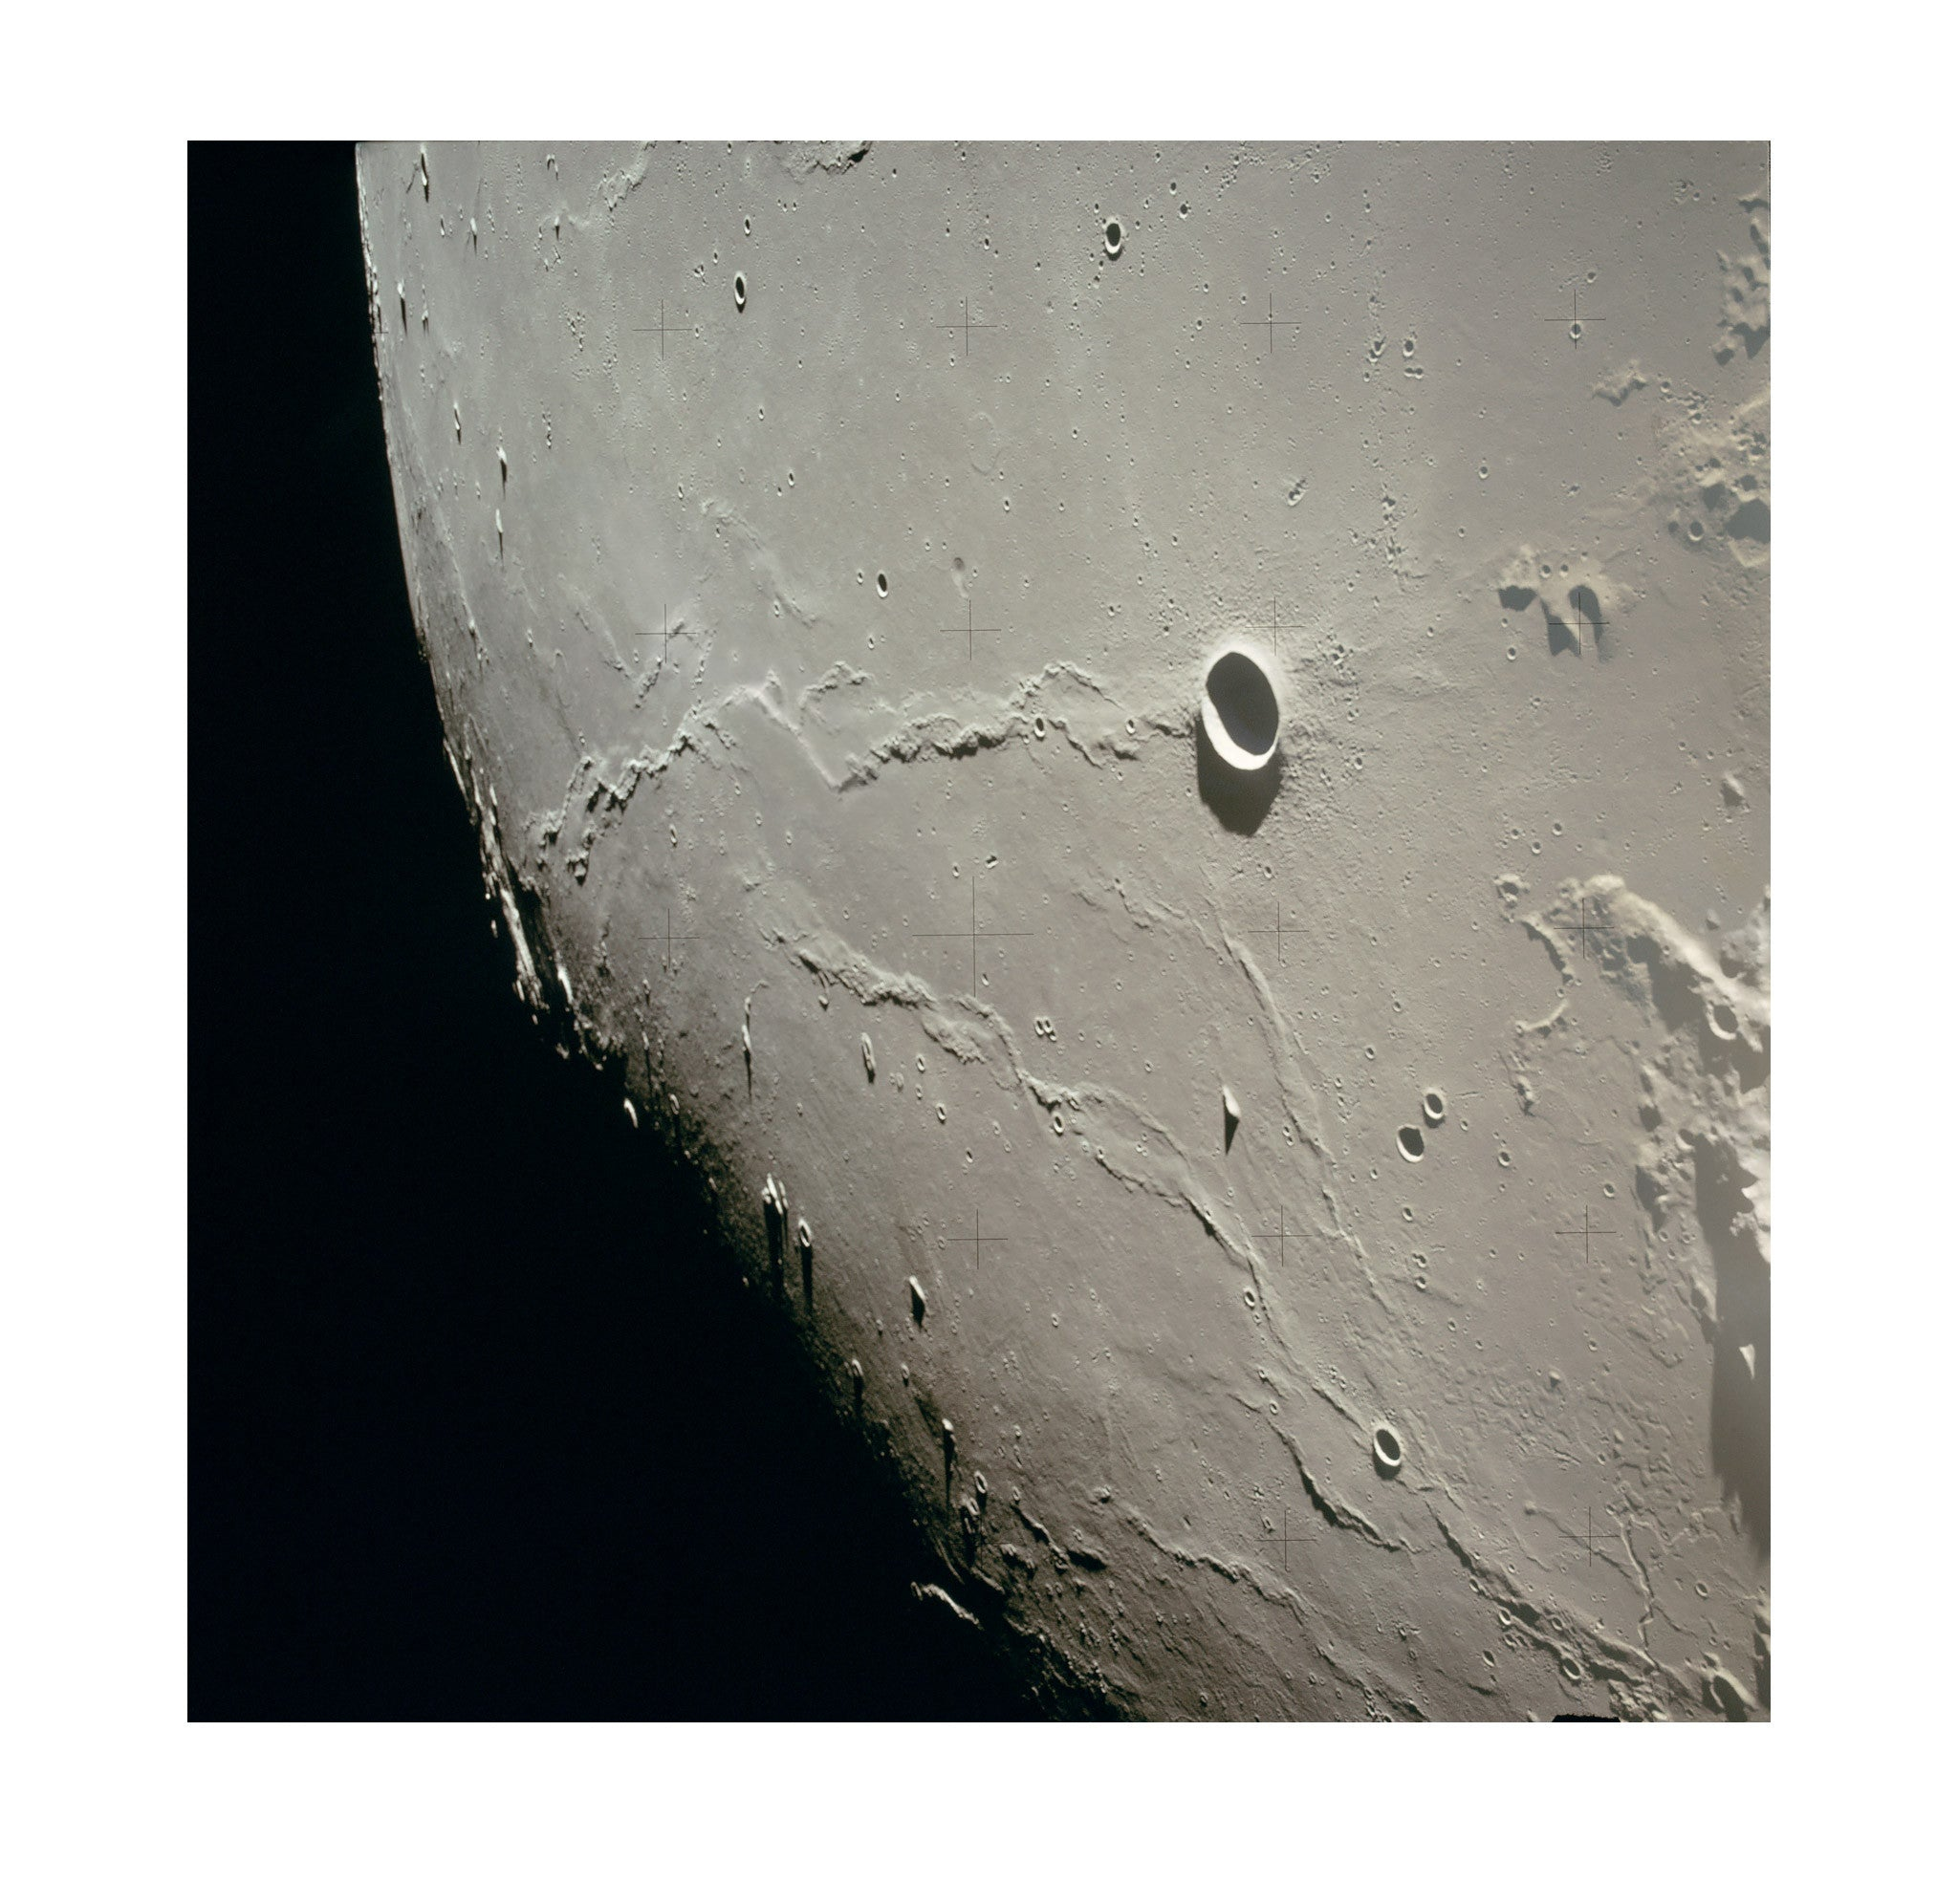 Apollo 15 – Crater